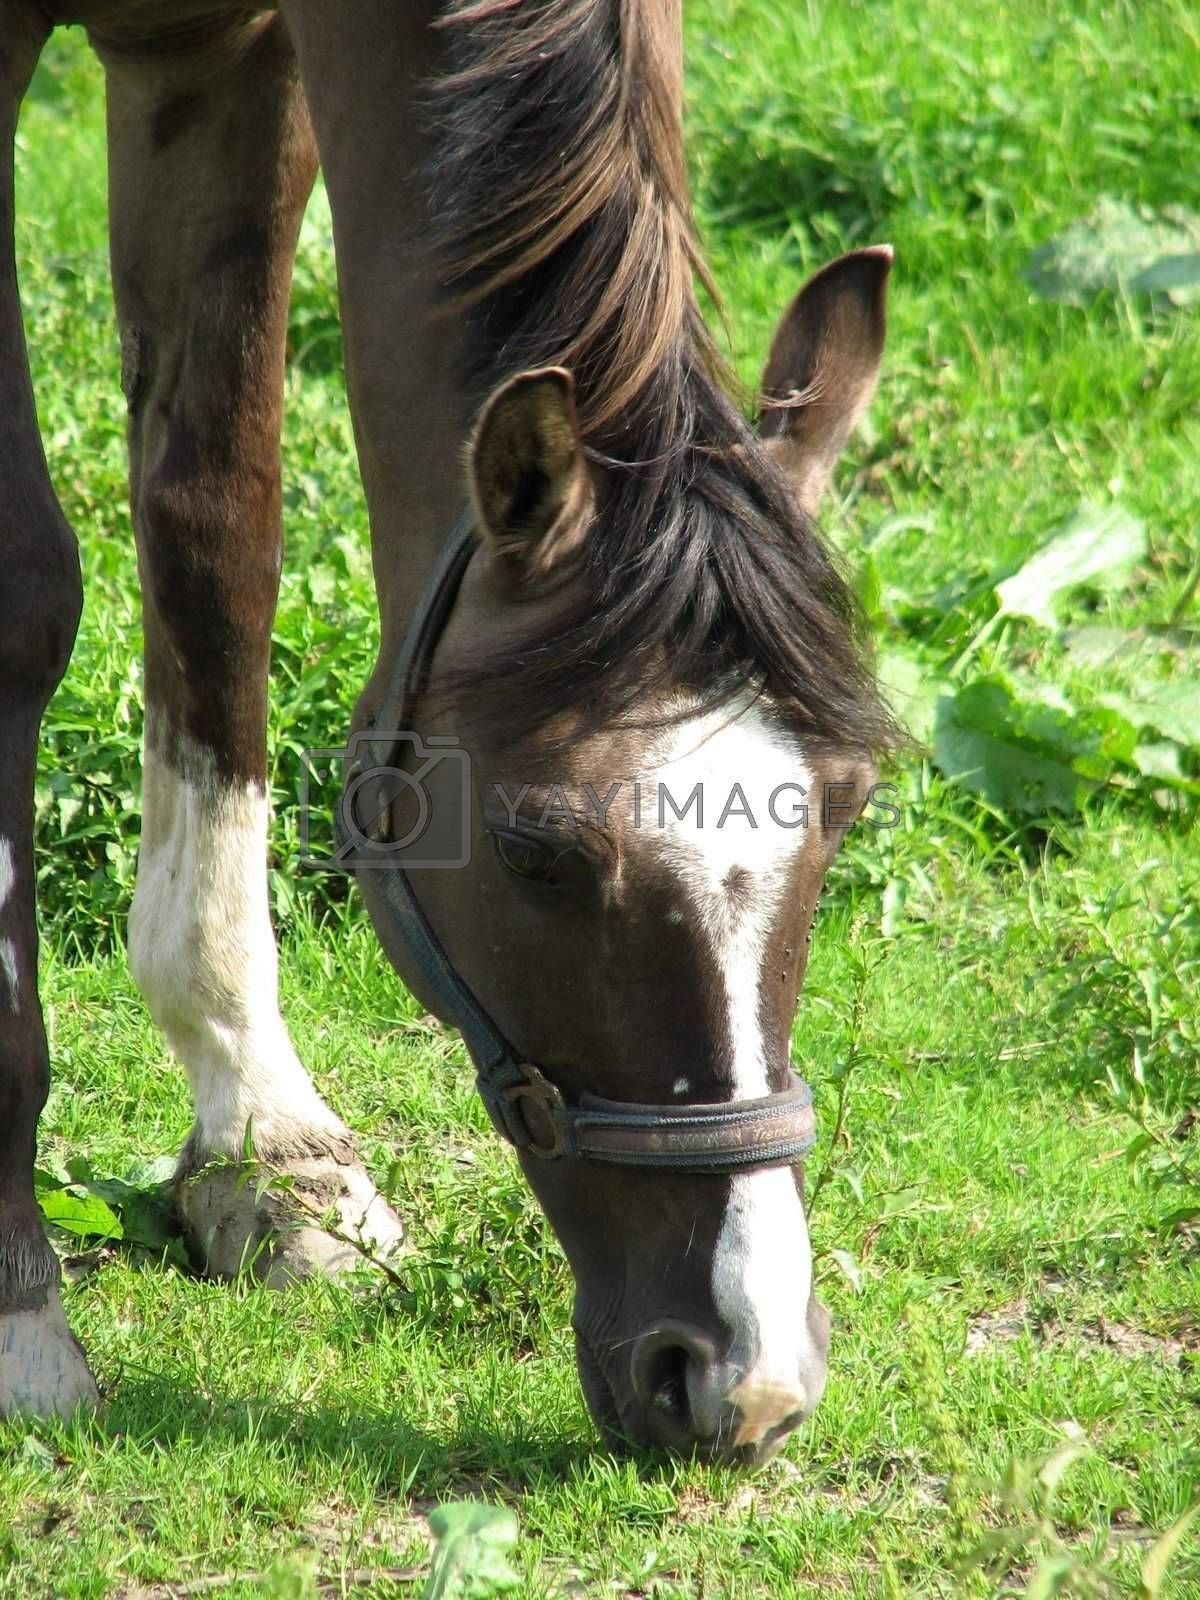 Horse in the pasture, close-up of the head